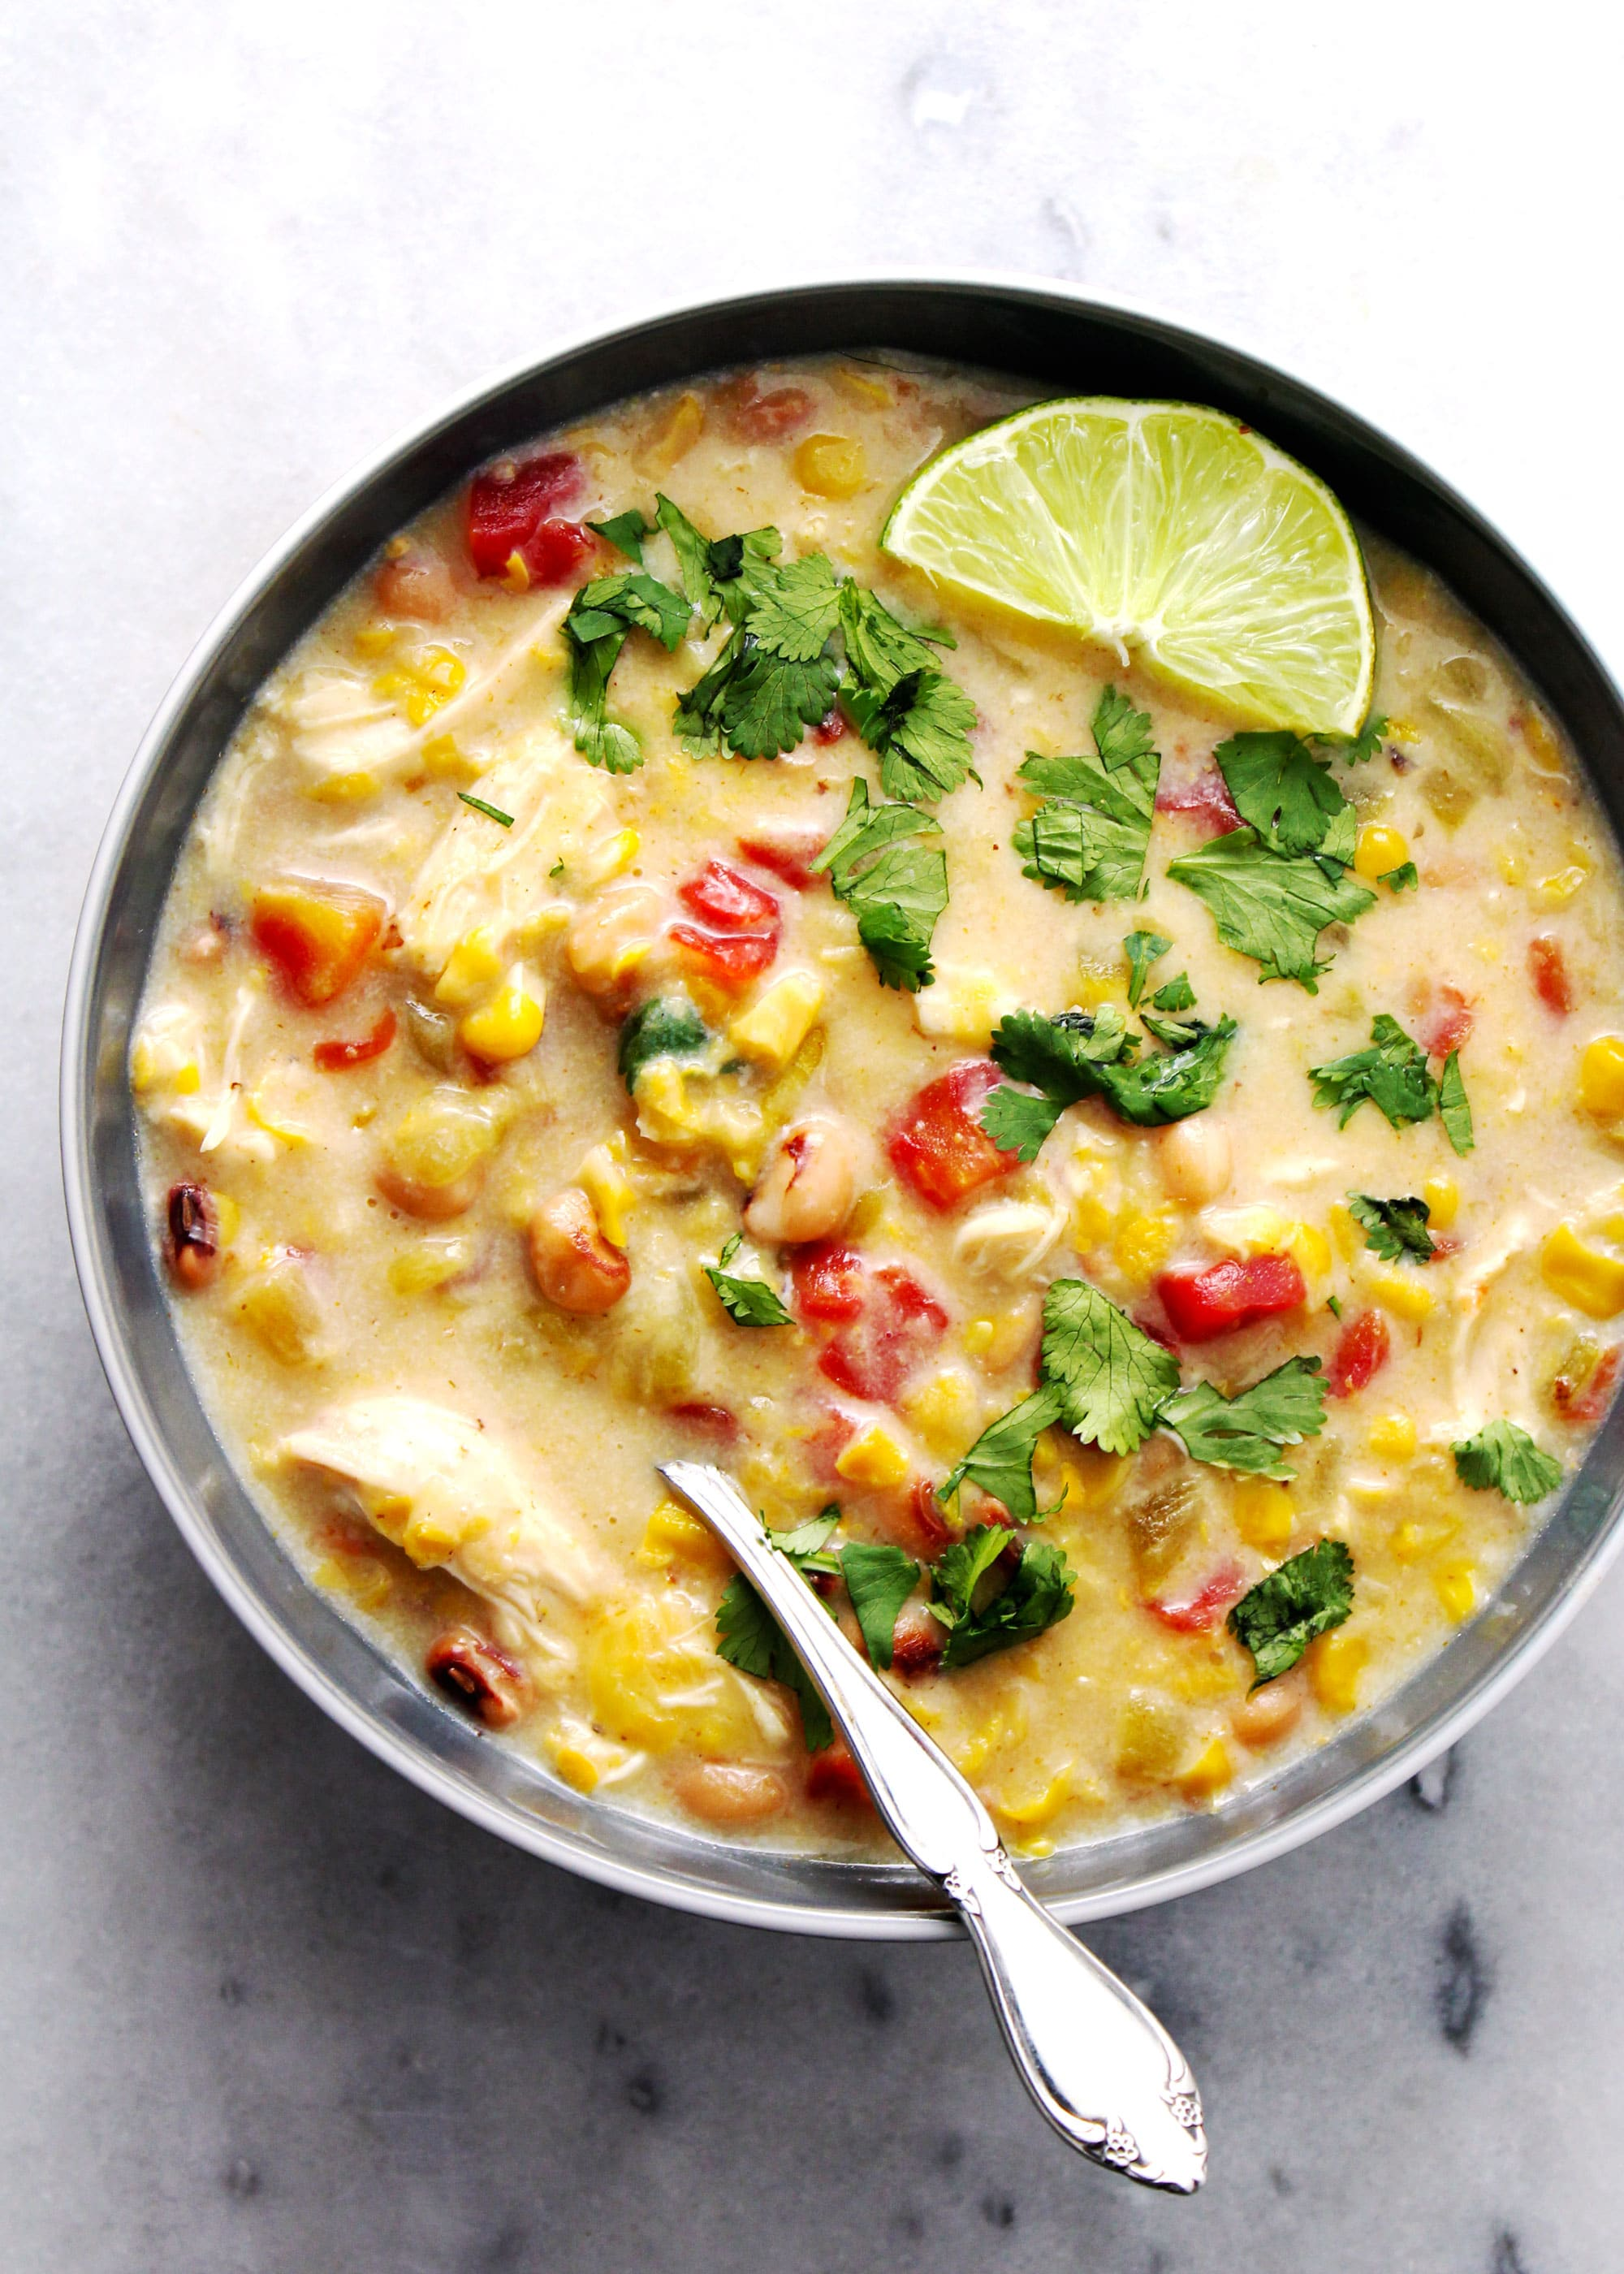 Black-eyed pea and corn chowder in a gray bowl with lime wedges.